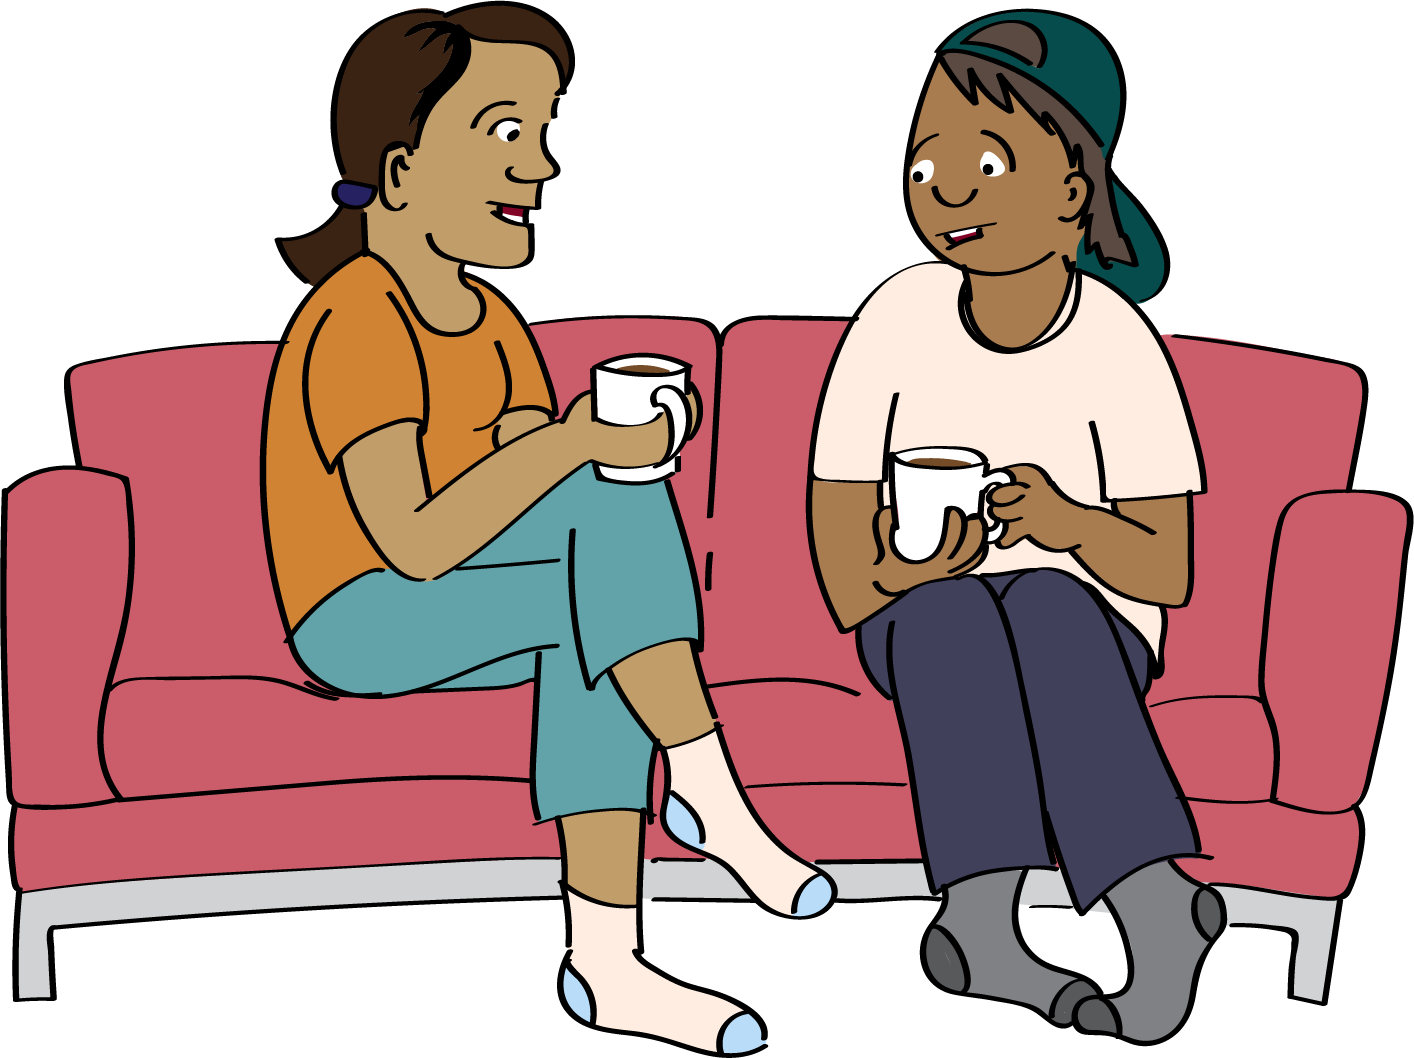 Two people sitting on the sofa holding hot drinks